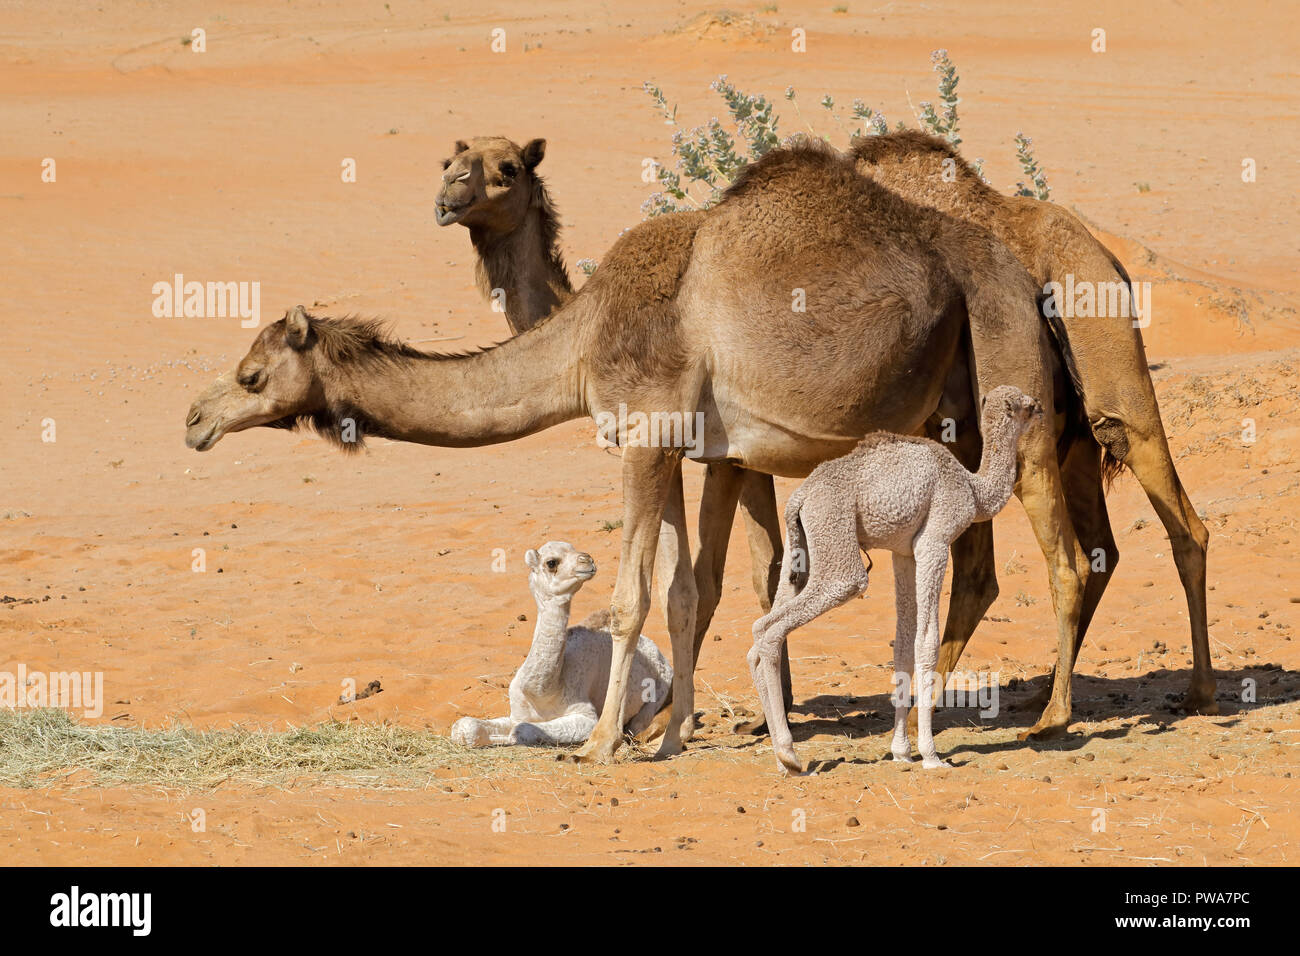 Camels with young calves on a desert sand dune, Arabian Peninsula - Stock Image